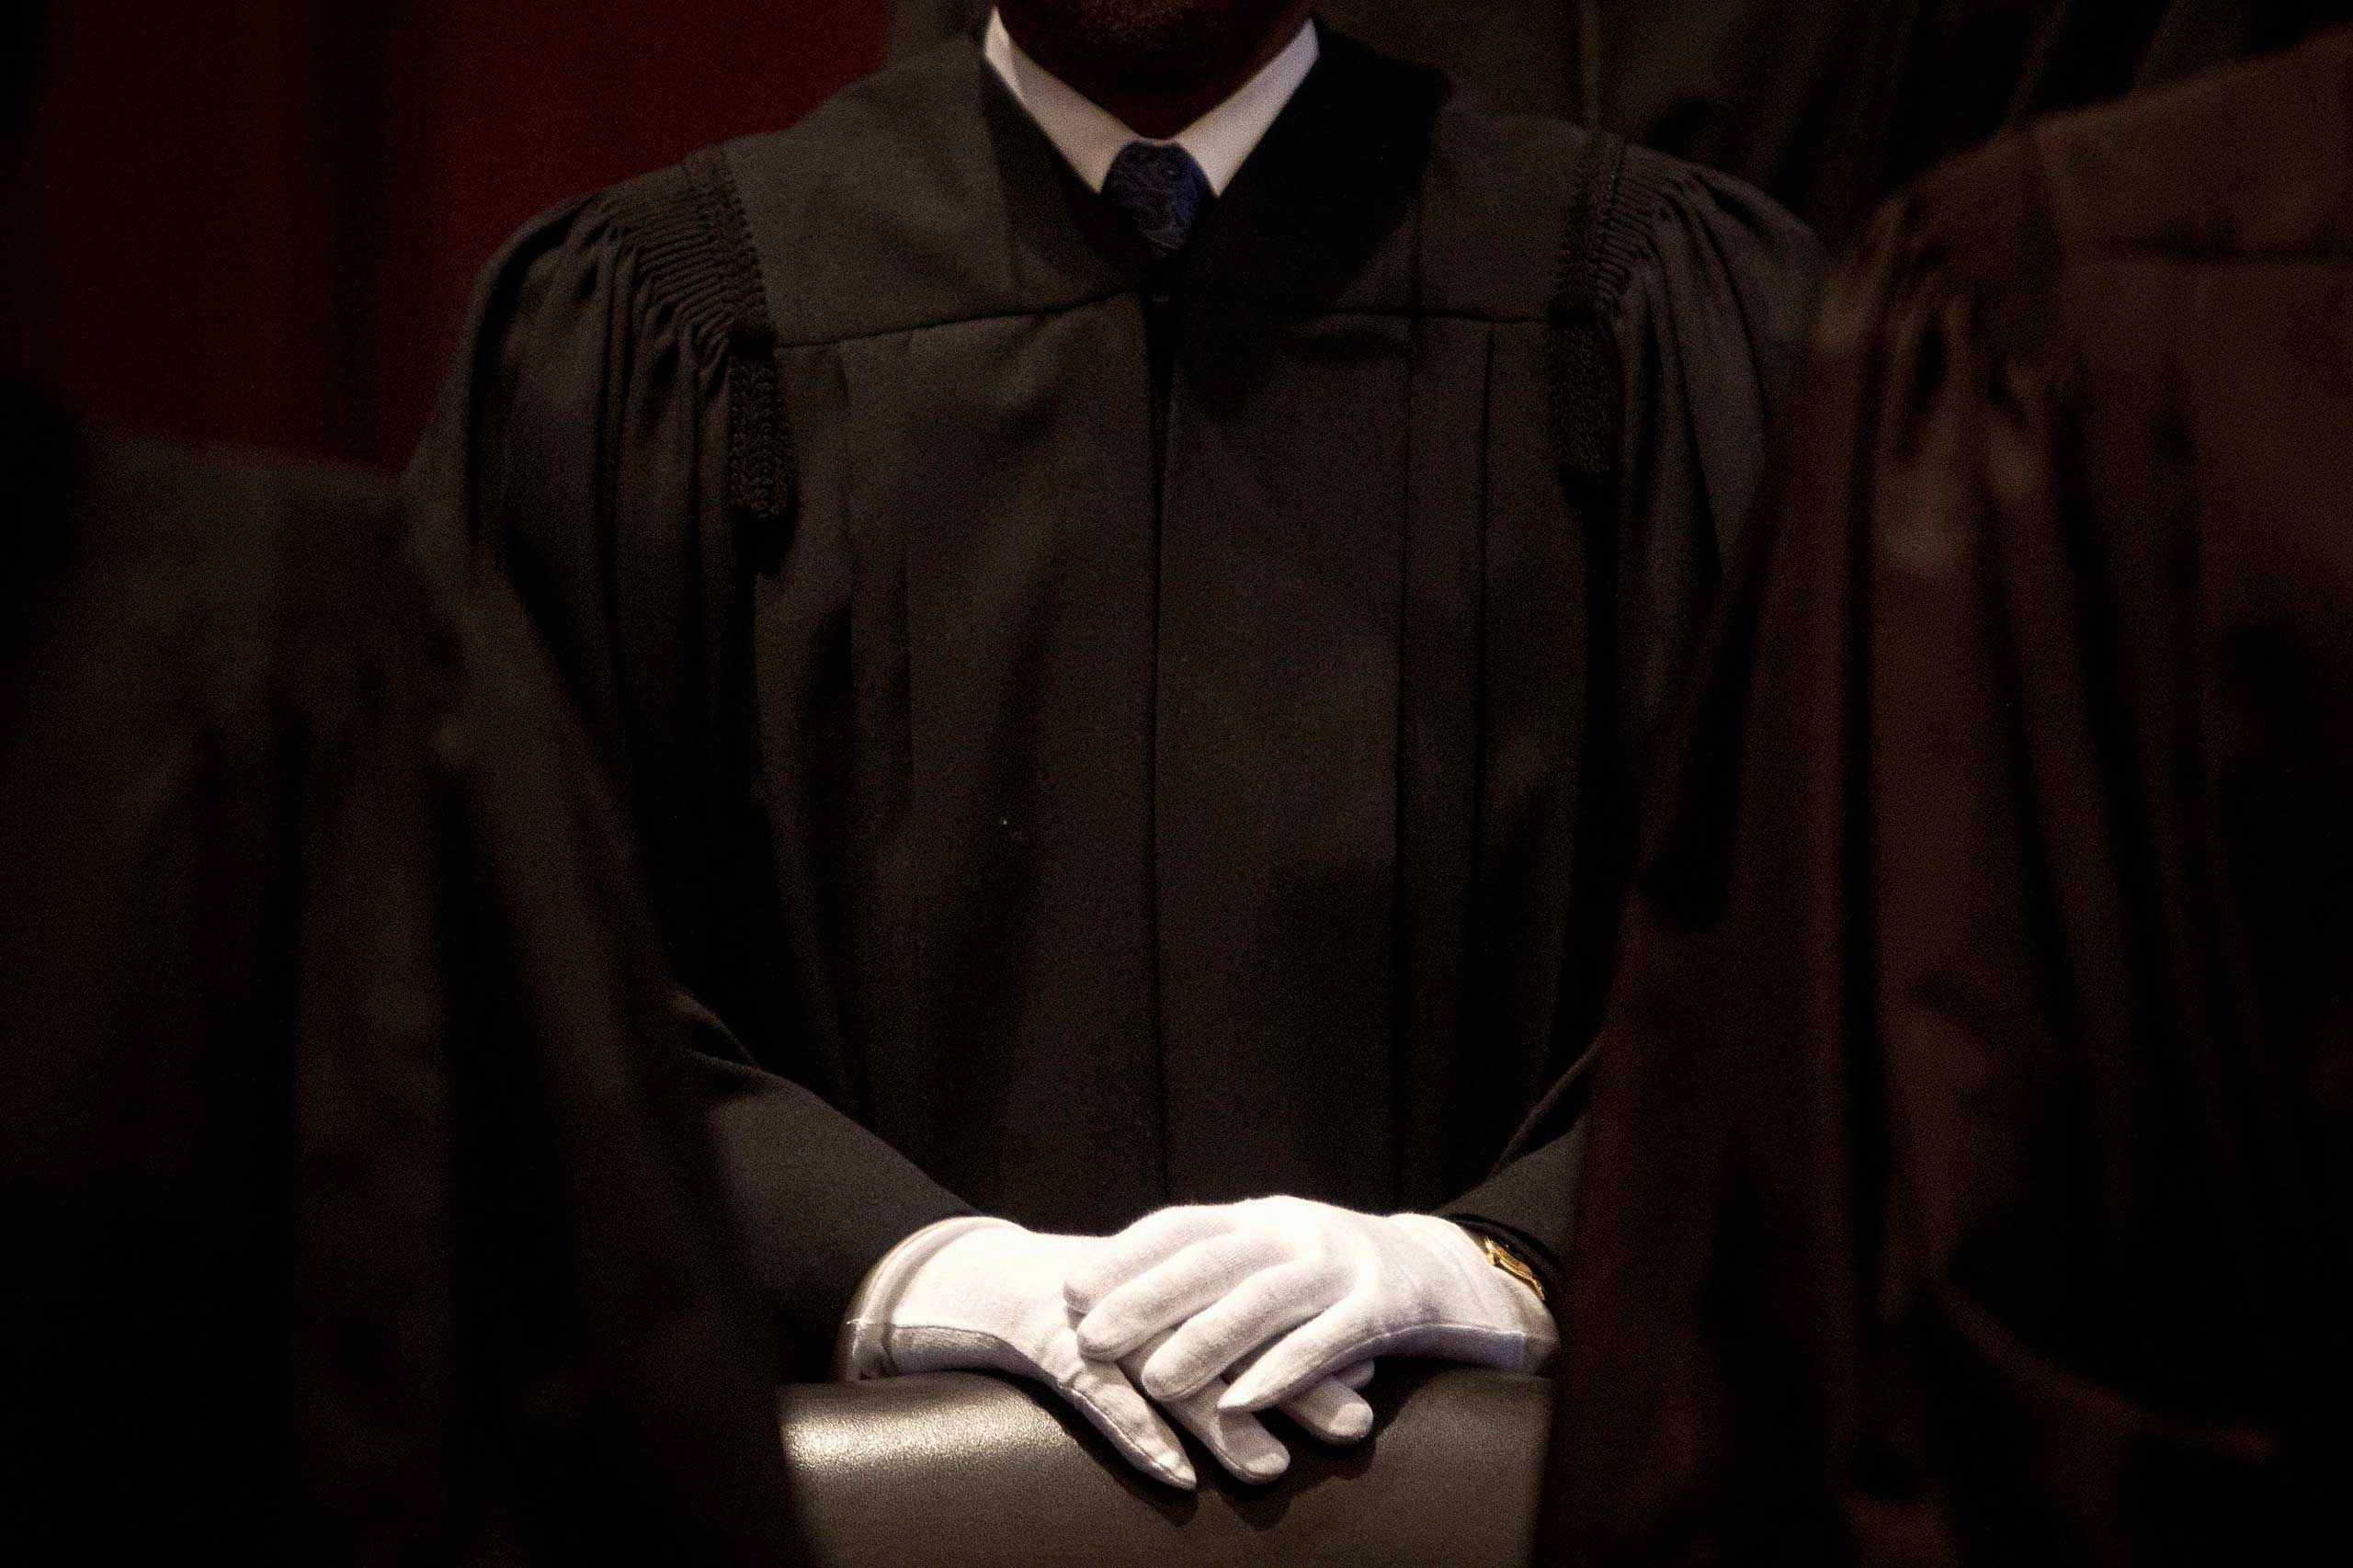 Nov. 4, 2014. A judge wearing white gloves stands before a special session of the U.S. District Court for the Southern District of New York on the occasion of the 225th anniversary of the first session of the court.